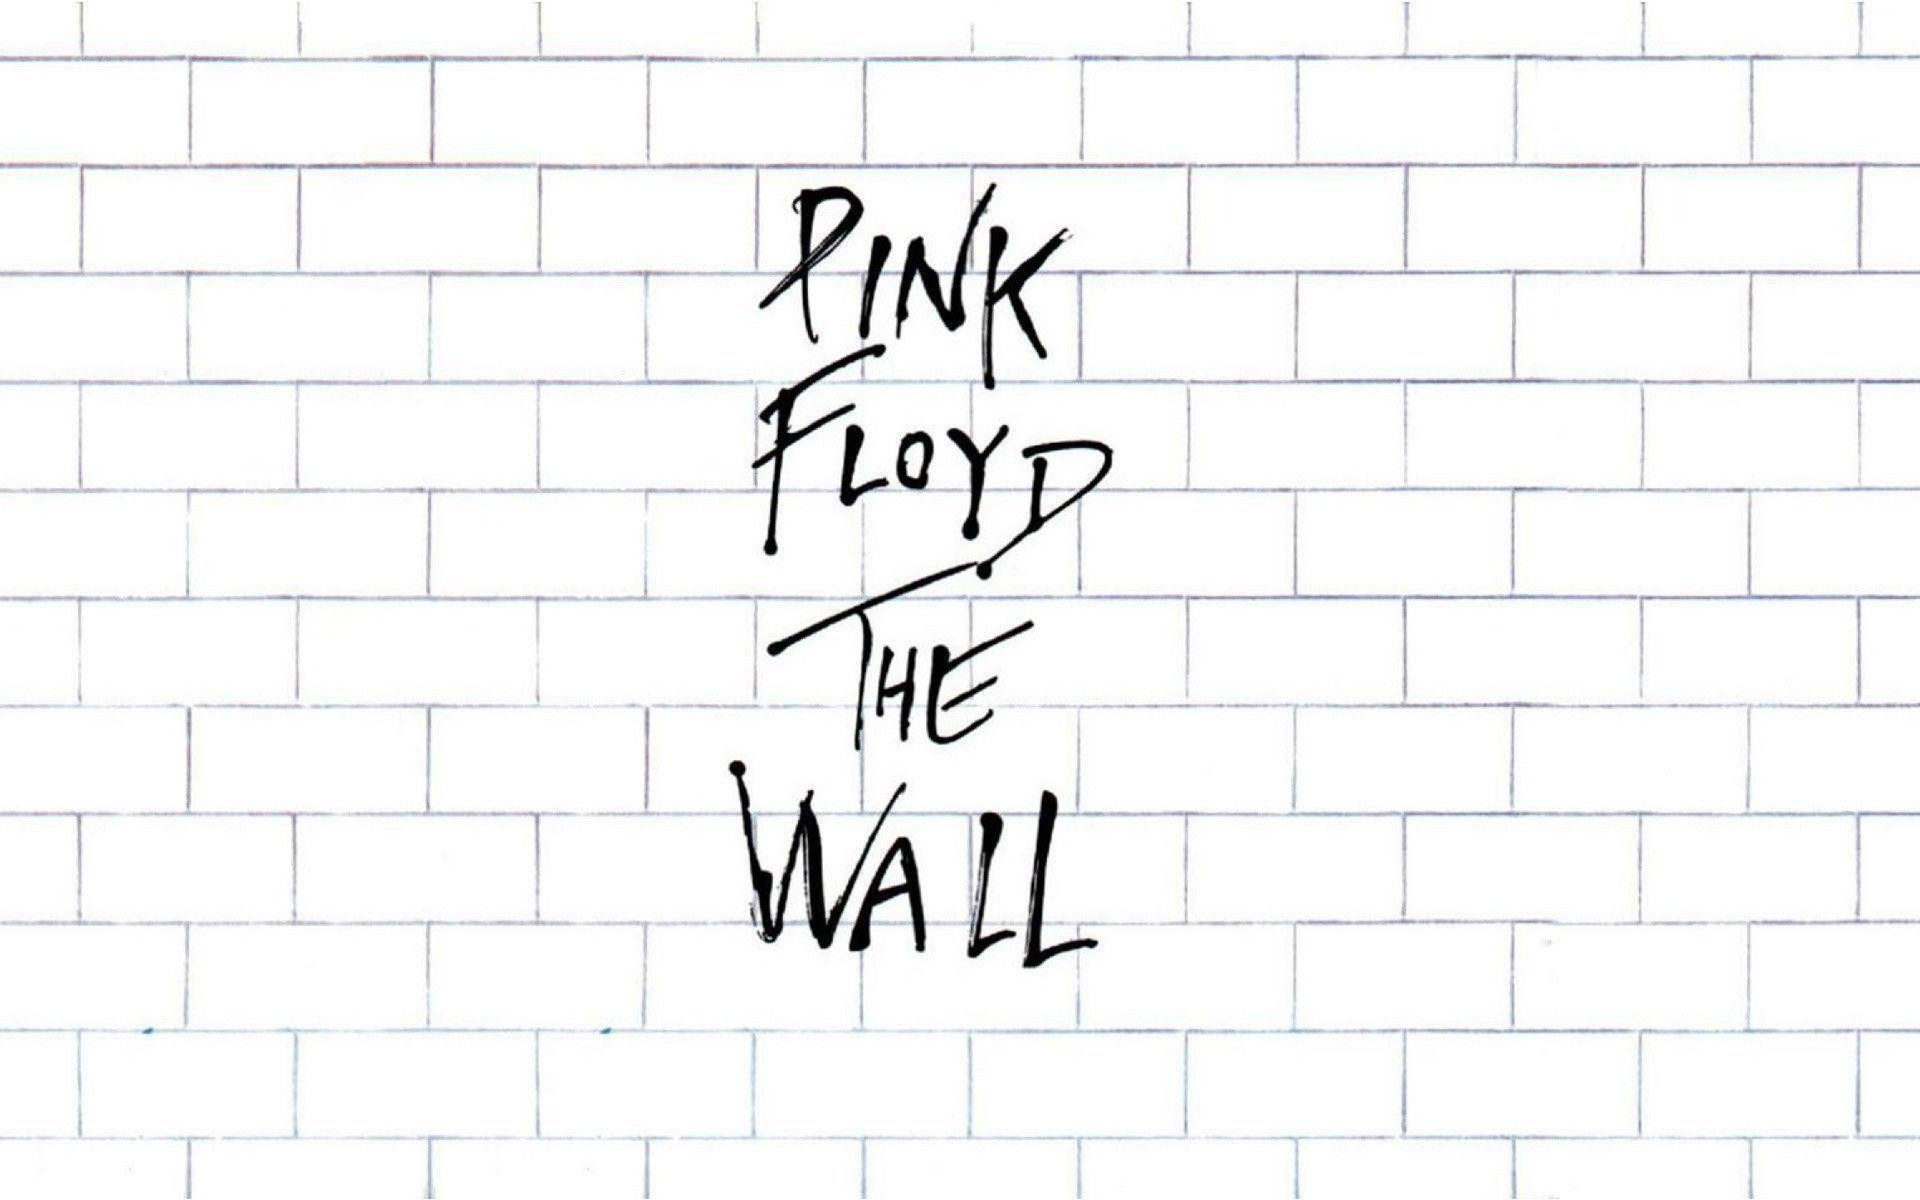 1920x1200 Pink Floyd The Wall Wallpaper | Wallpaper Color